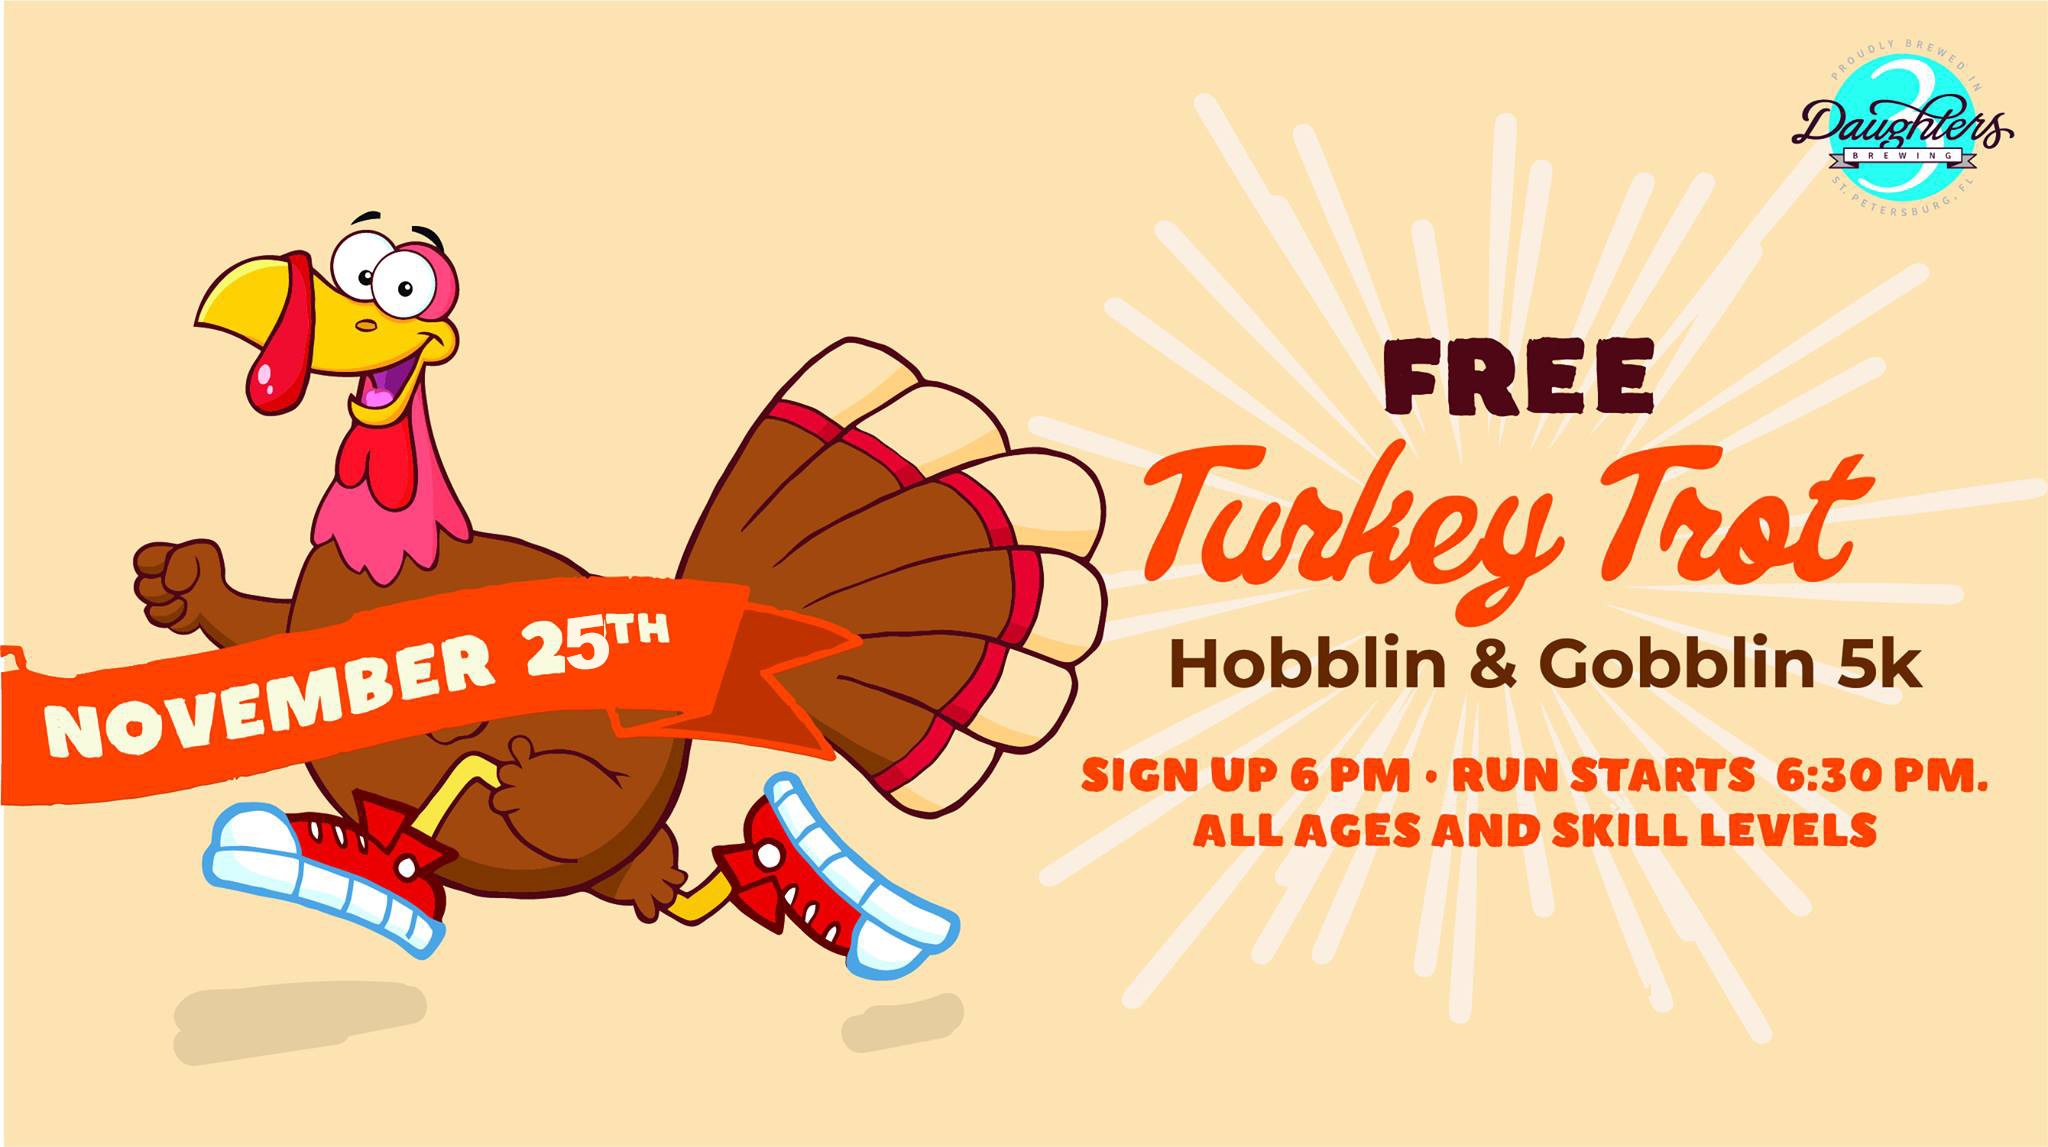 3 Miles from 3 Daughters – Turkey Trot